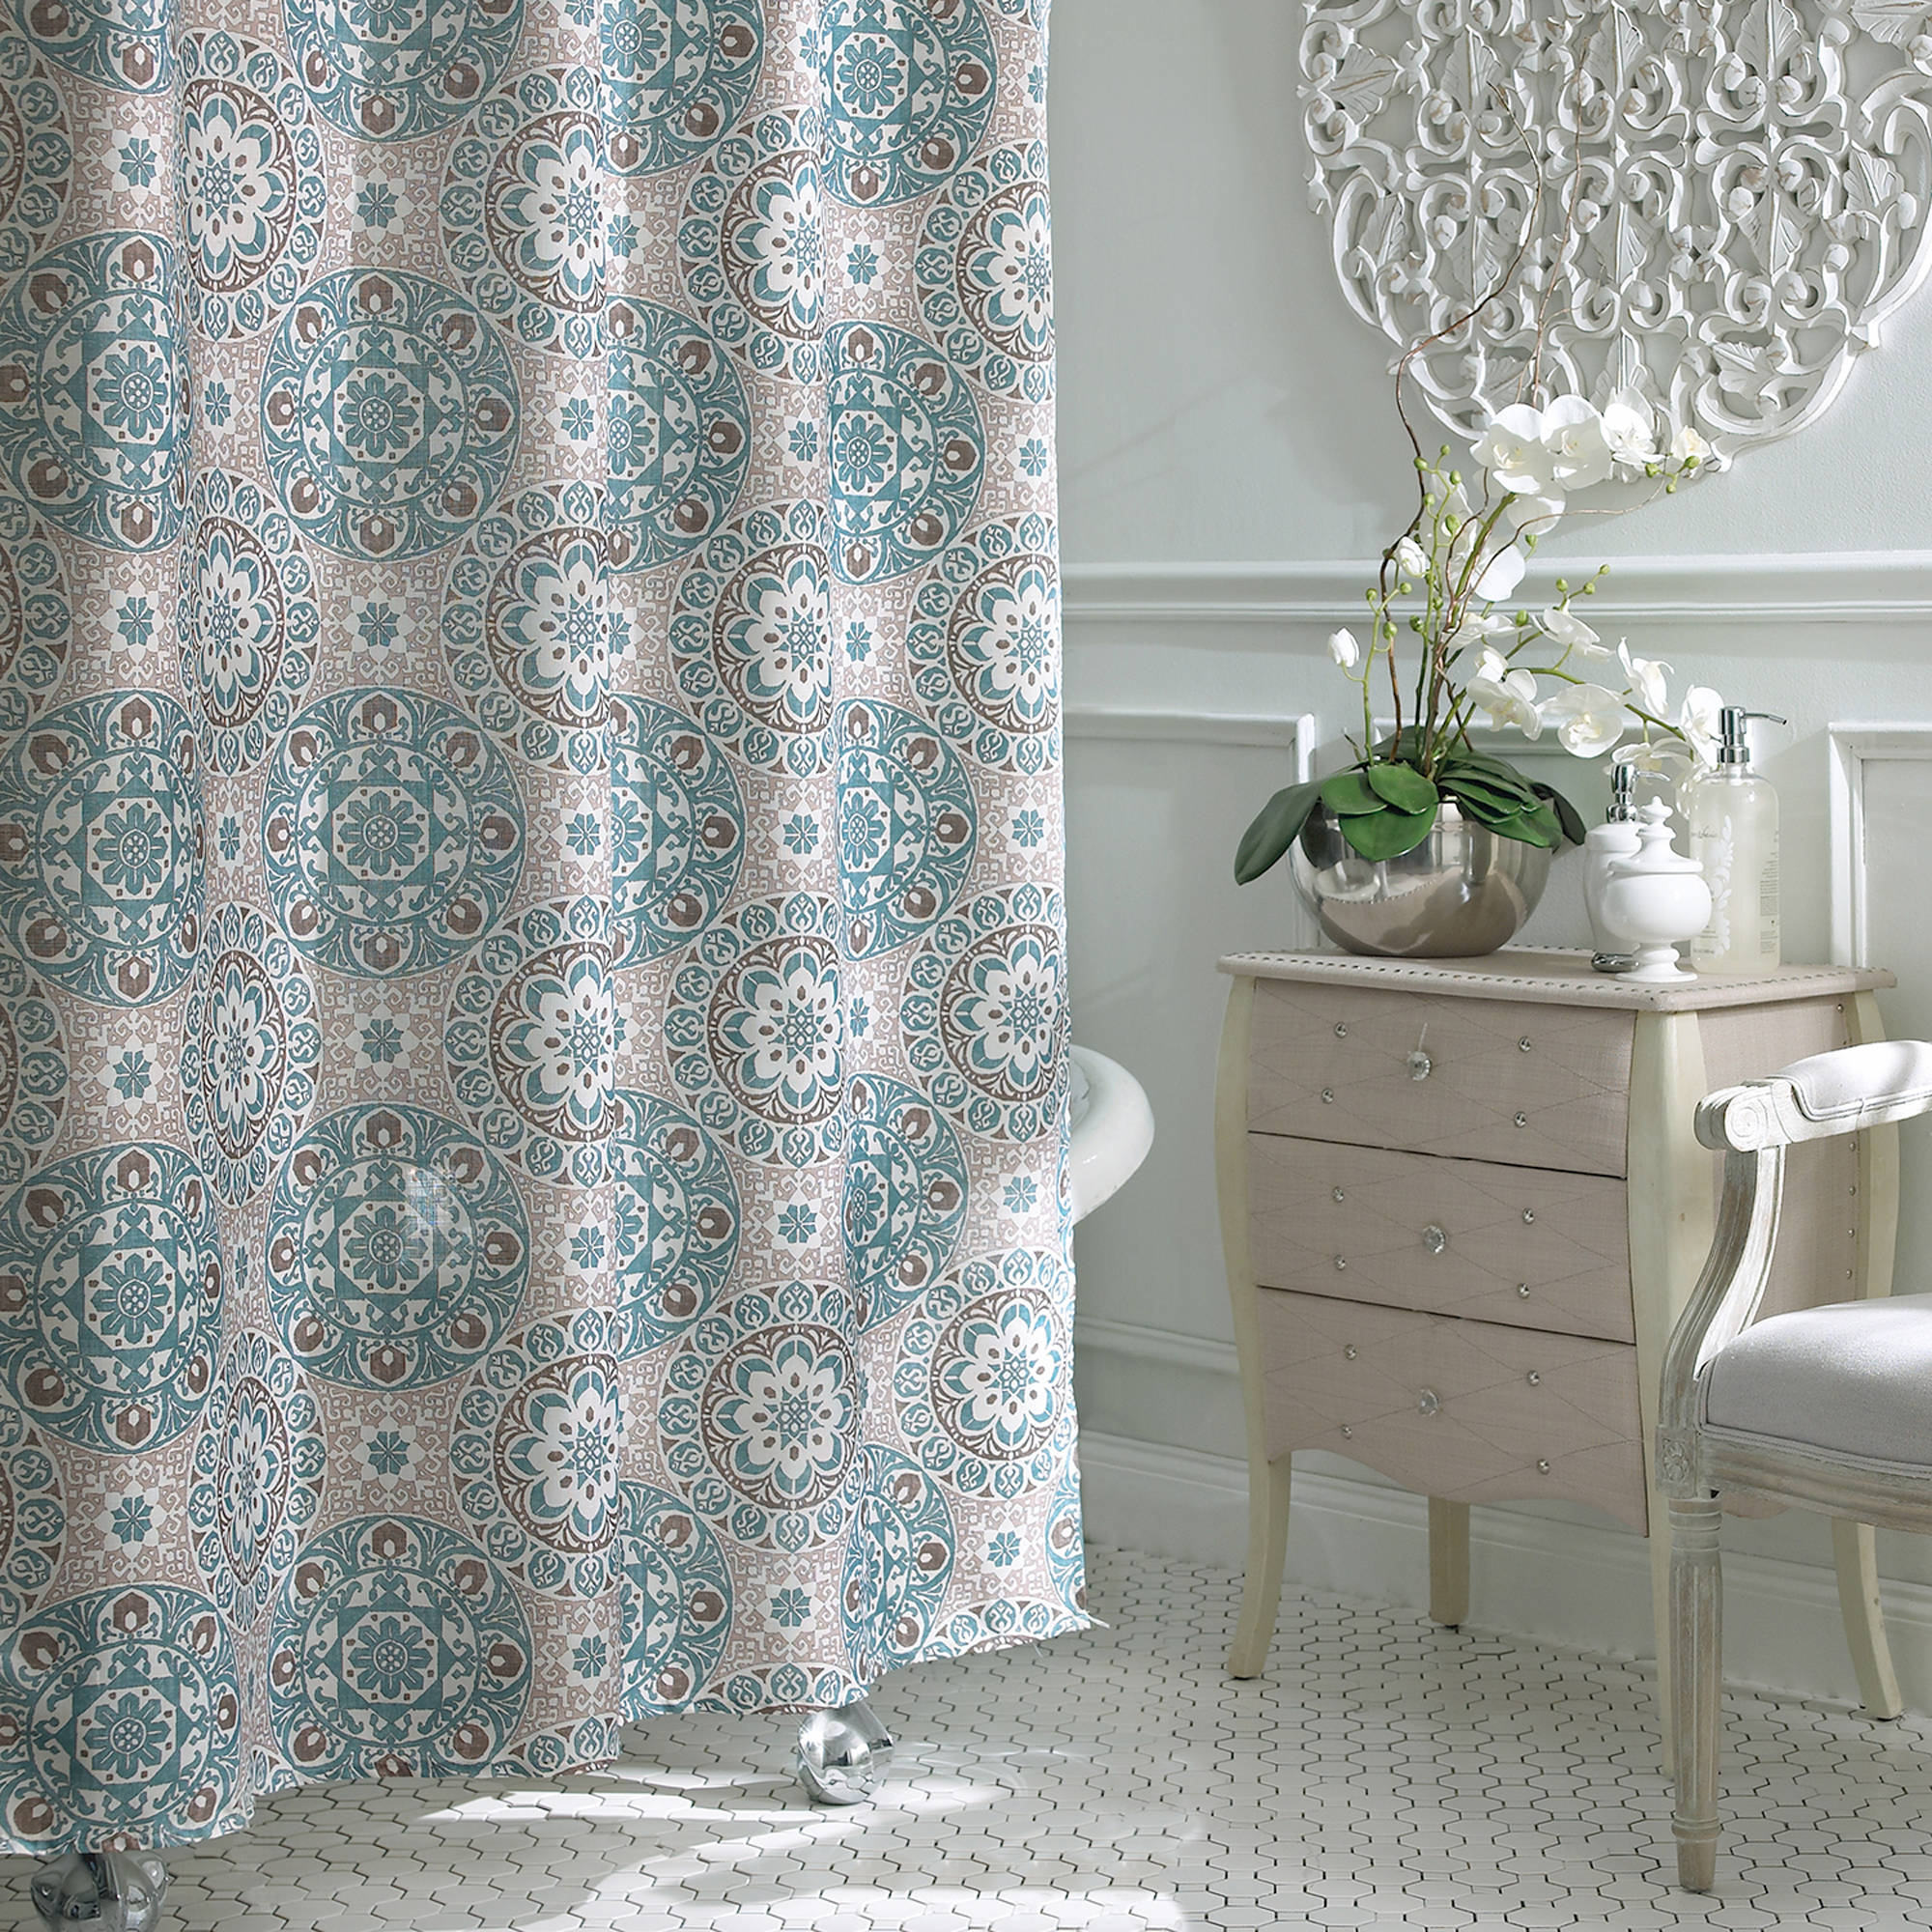 Excell Carthe Fabric Shower Curtain - Walmart.com